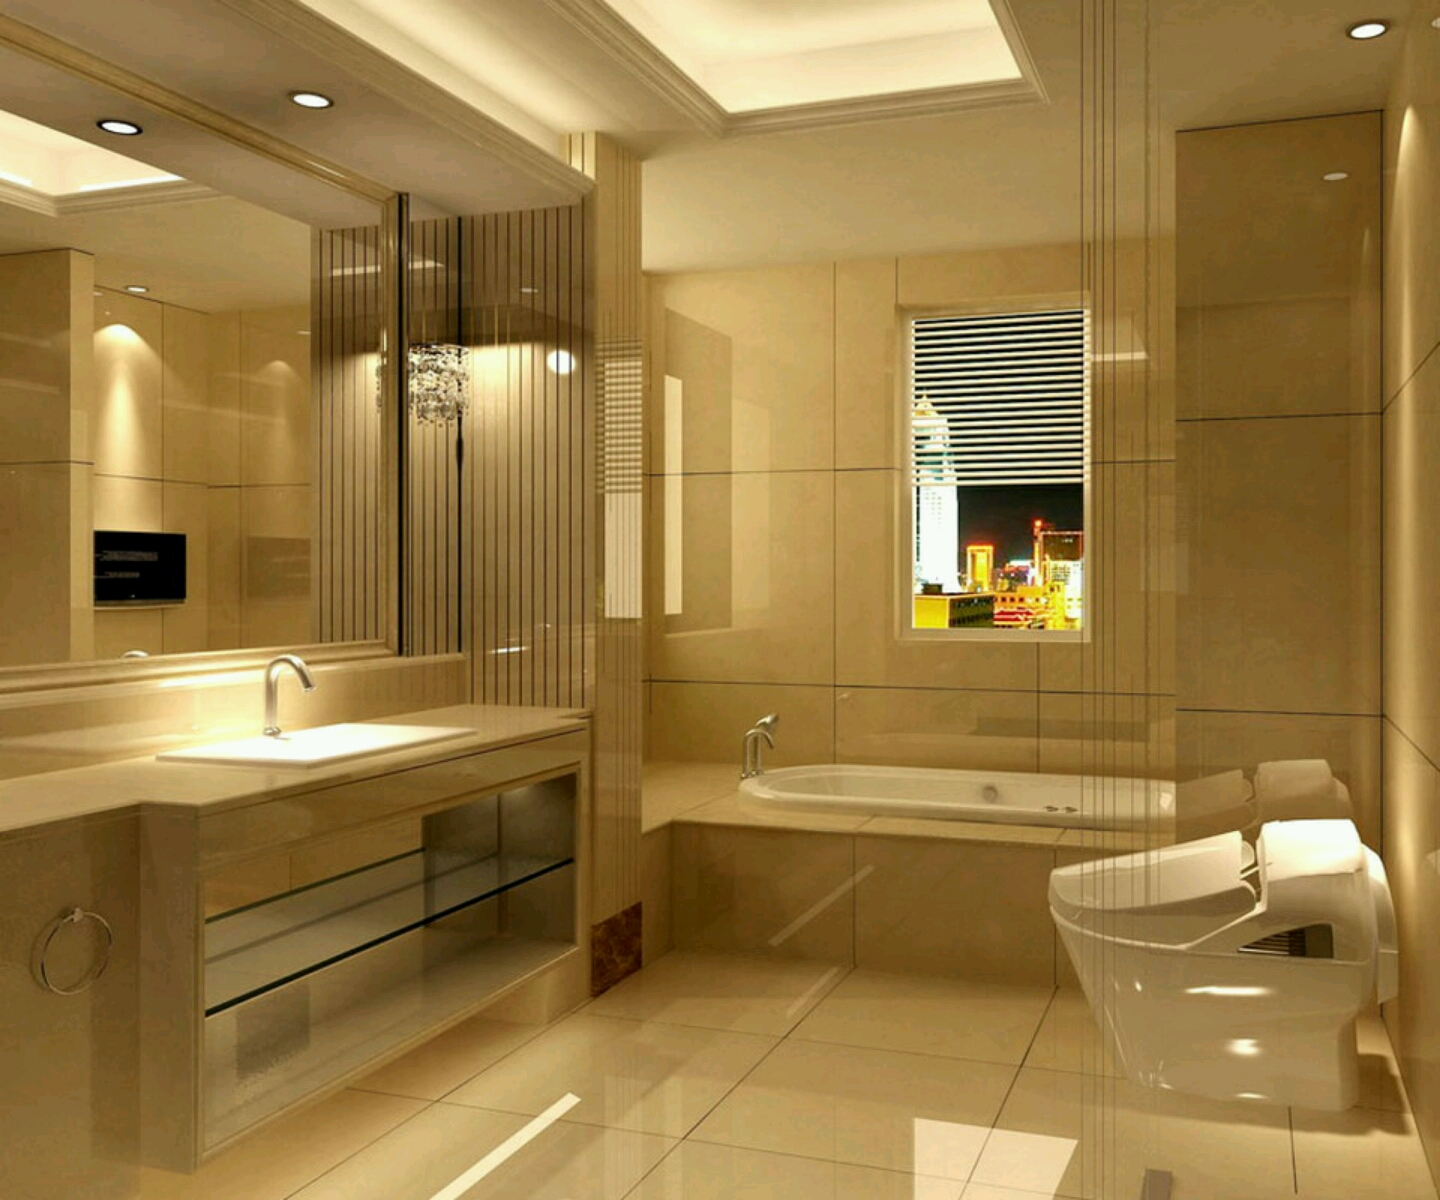 Modern bathrooms setting ideas. ~ Furniture Gallery